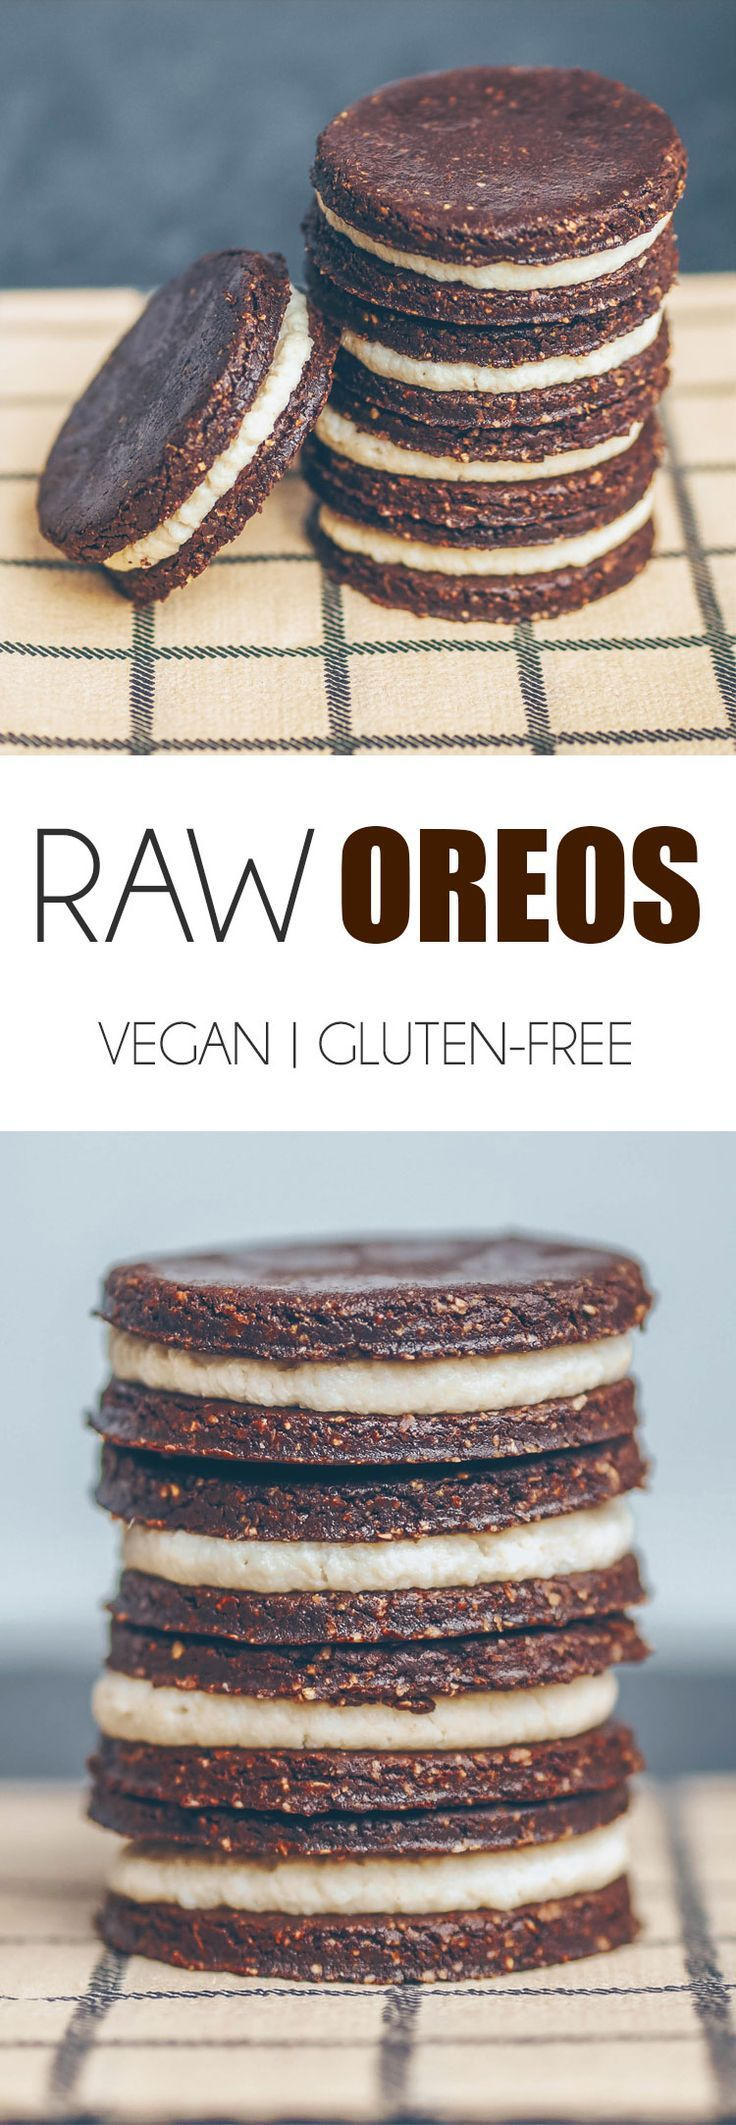 RAW VEGAN & GLUTEN-FREE OREOS Chocolate Cookie 1 cup (115g) oat flour (plain rolled oats blended into a flour in the food processor)1/2 cup (58g) cocoa/cacao powder1/4 (4 tbsp) cup maple syrup (or any other liquid sweetener)2.5 tbsp melted coconut oil1/4 tsp salt Cashew Cream 3/4 cup (90g) cashews - soaked in water for at 8 hours or overnight1.5 tbsp maple syrup (or any other liquid sweetener)1 tbsp coconut oil1 tbsp milk of choice1/2 tsp vanilla extractPinch salt